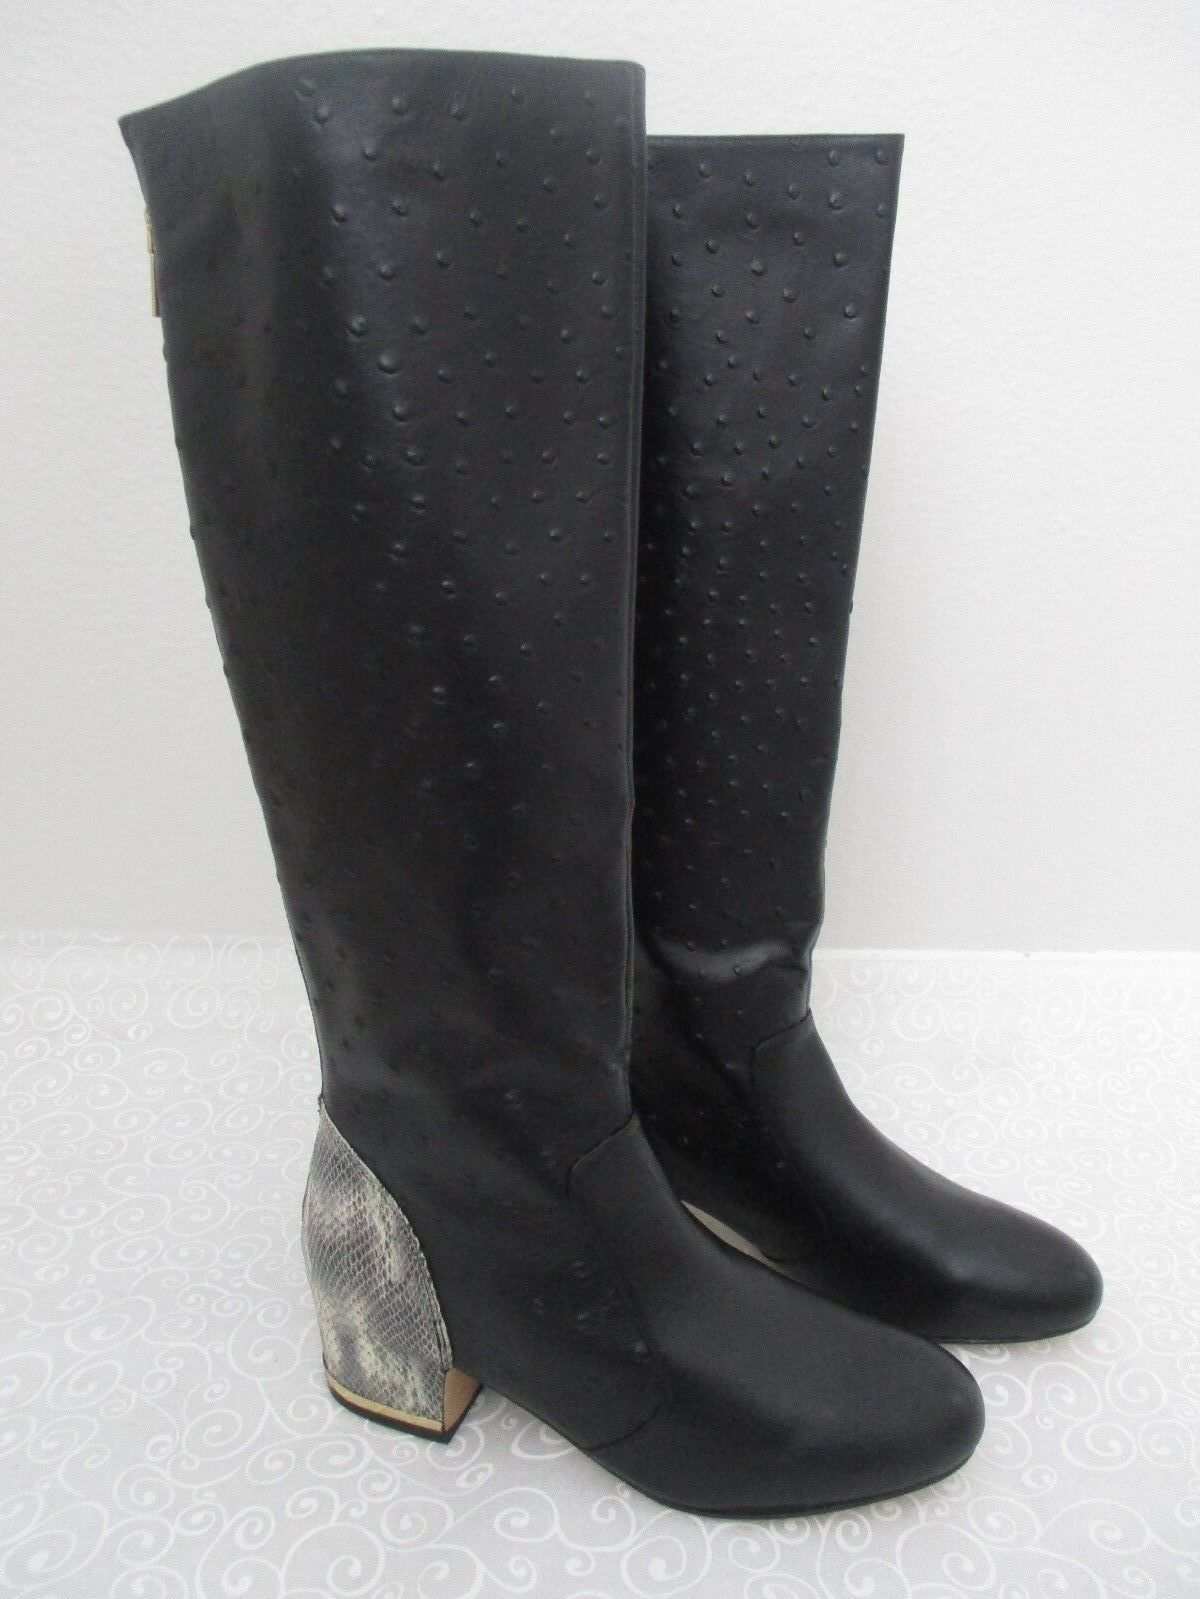 $239 DEESIGNS BLACK OSTRICH LEATHER KNEE 9 HIGH BOOTS SIZE 9 KNEE M - NEW 1ab09b